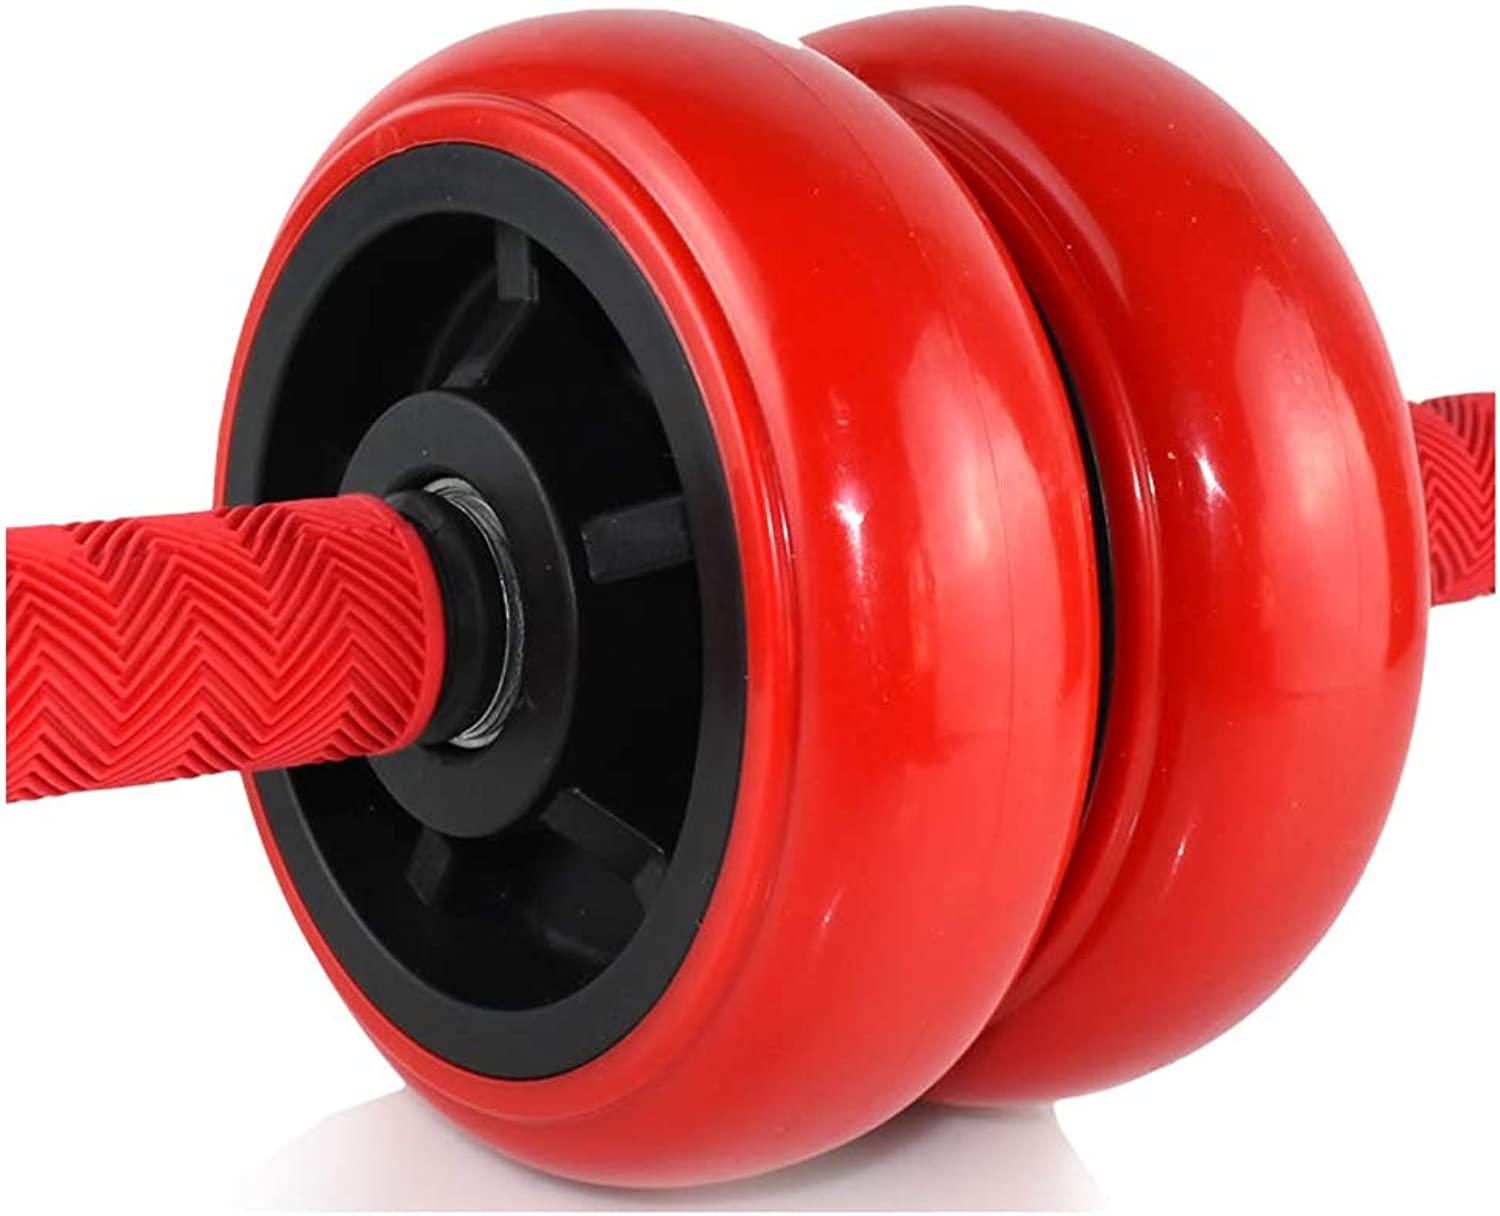 Rubber Solid Roller  Sport Wheel with Stable Double Wheels and Steel Handles is Ideal for Core Strength Training Abdominal Exercise (Red)